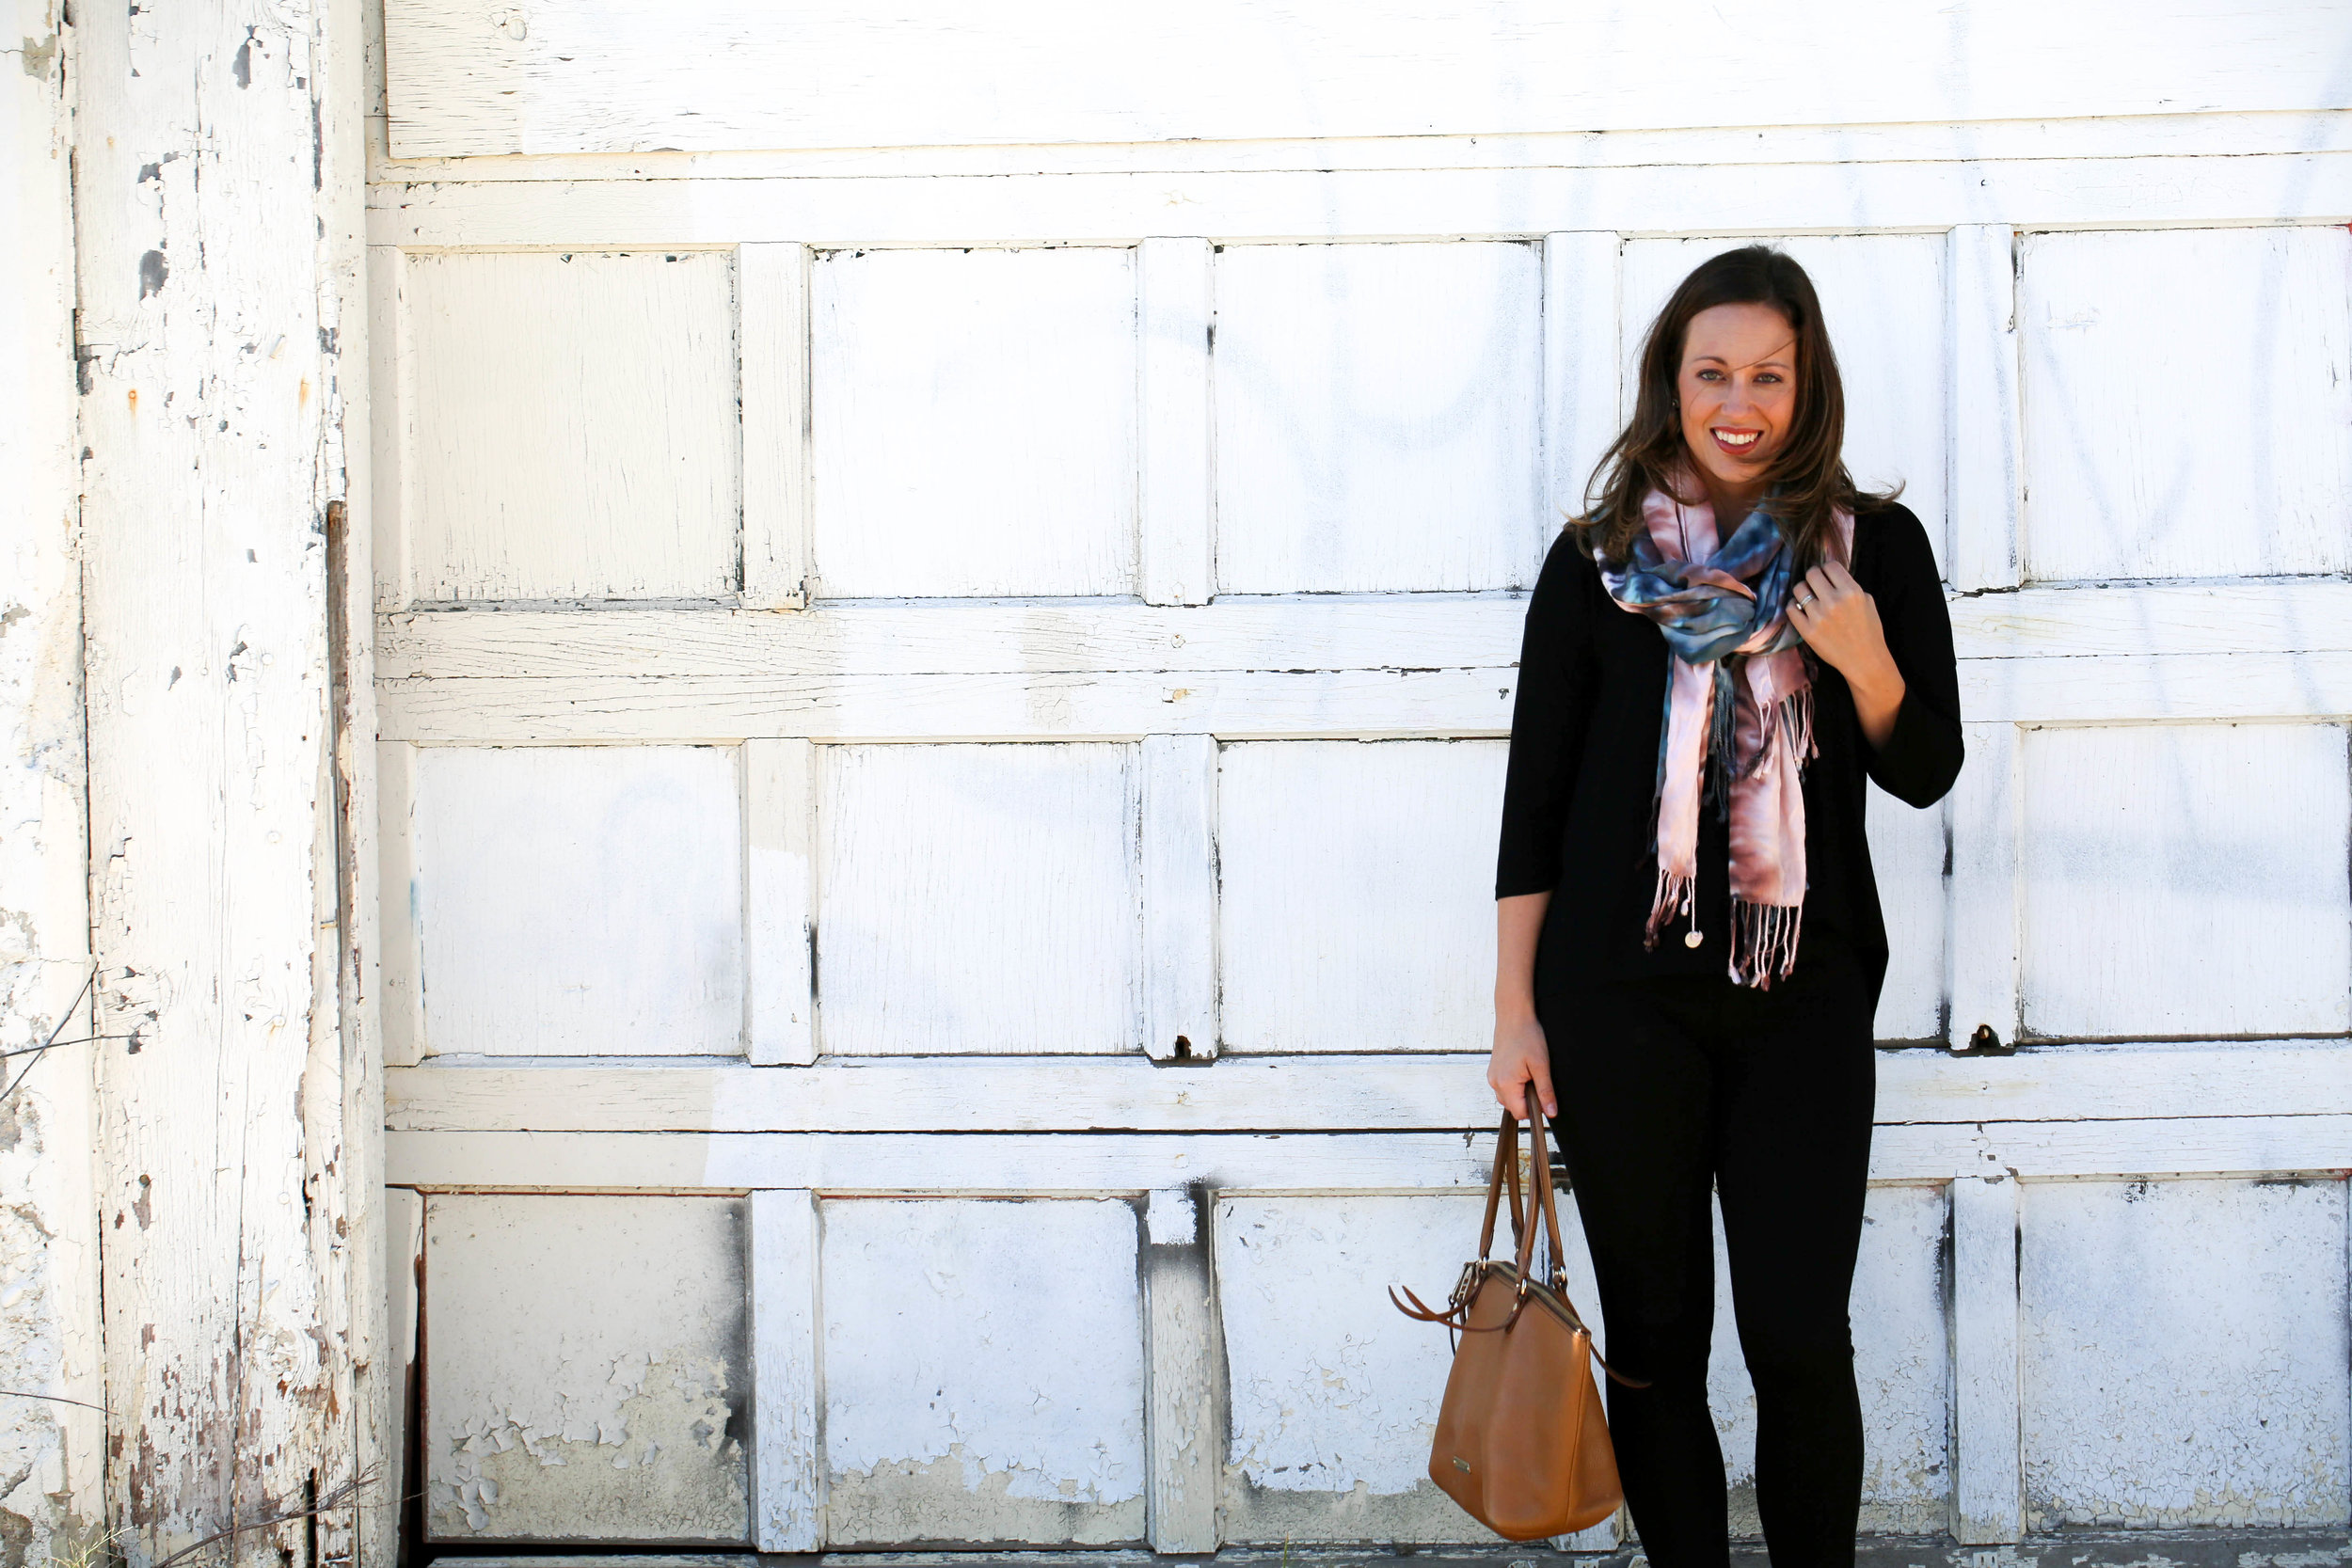 4 ways to tie a scarf, scarves, fall fashion, fall scarves, how to wear tie dye, tie dye fashion, tie dye, fall prints, autumn, best accessories, pop of color, statement piece, outfit of the day,